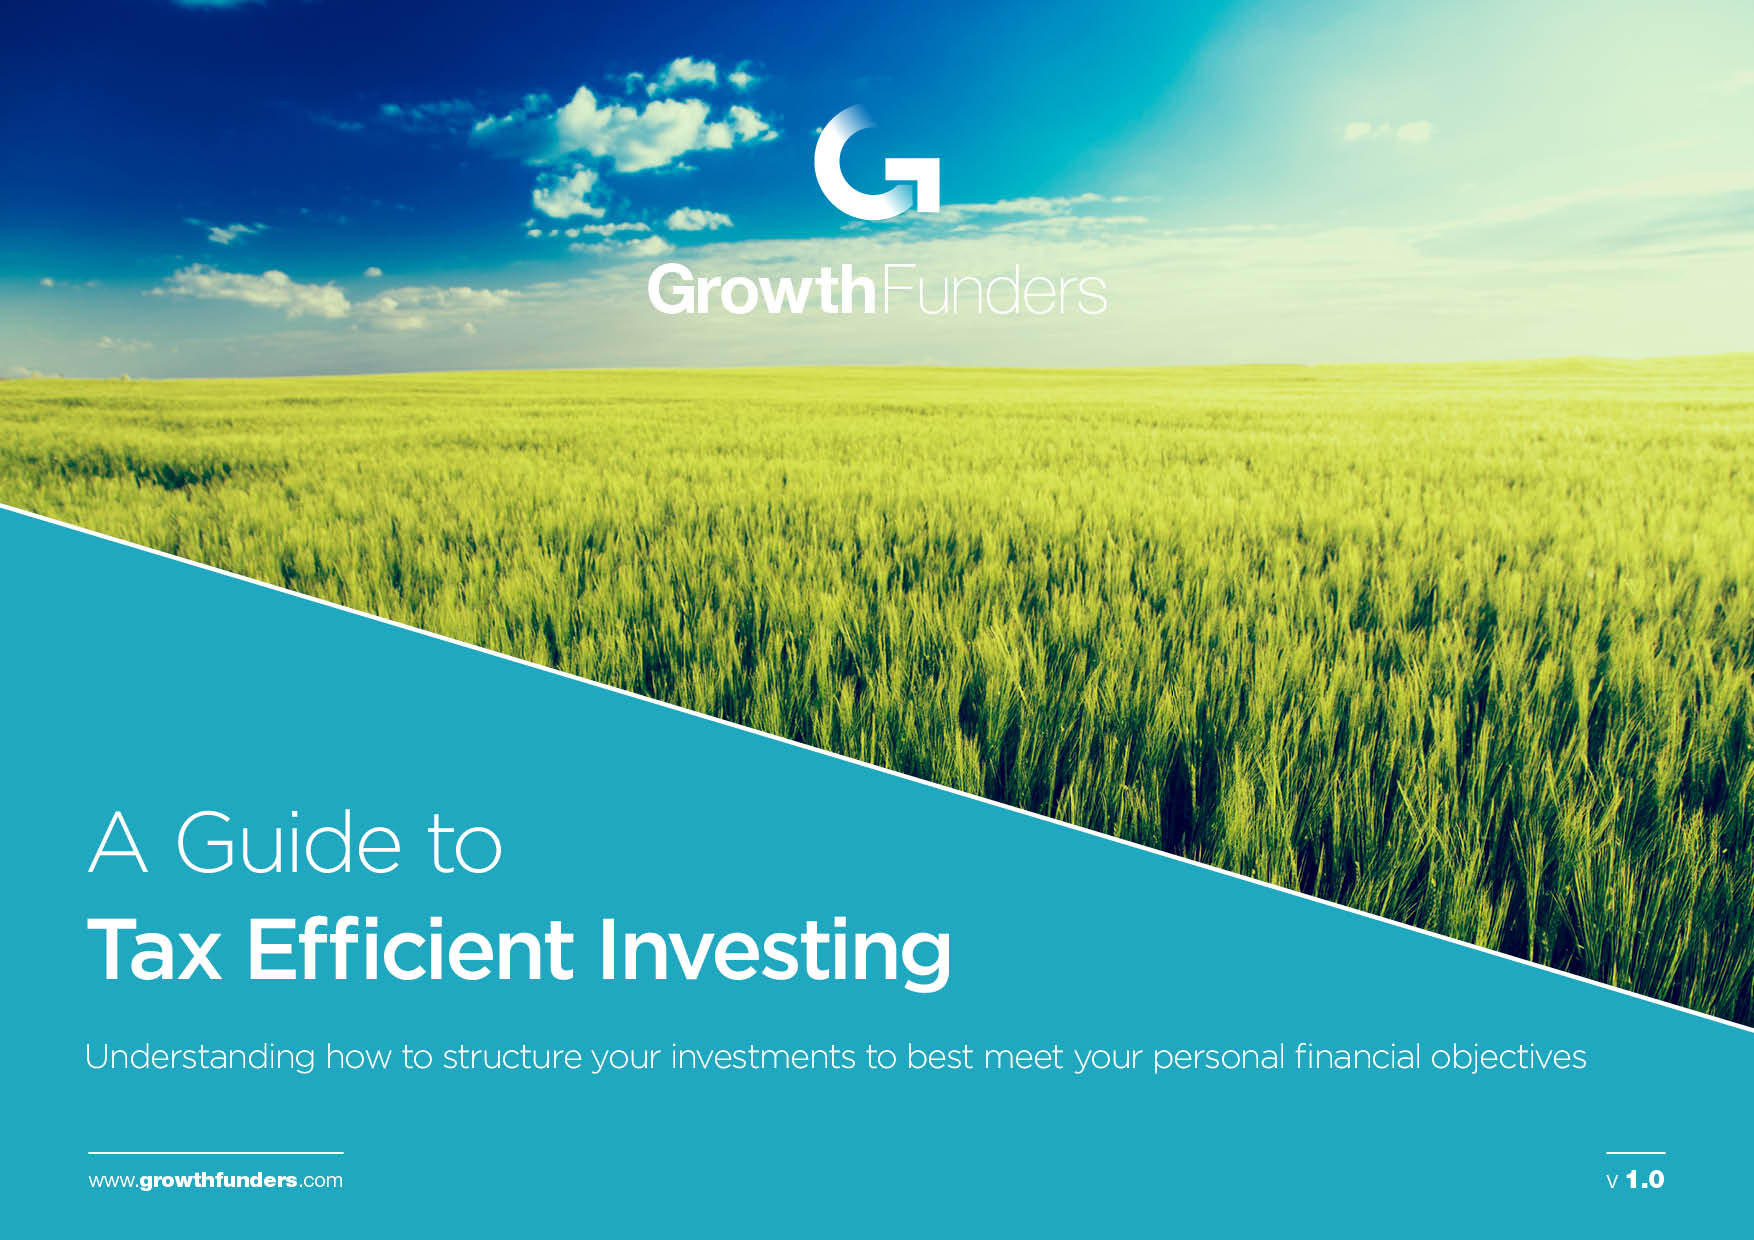 tax-efficient-investing-guide.jpg